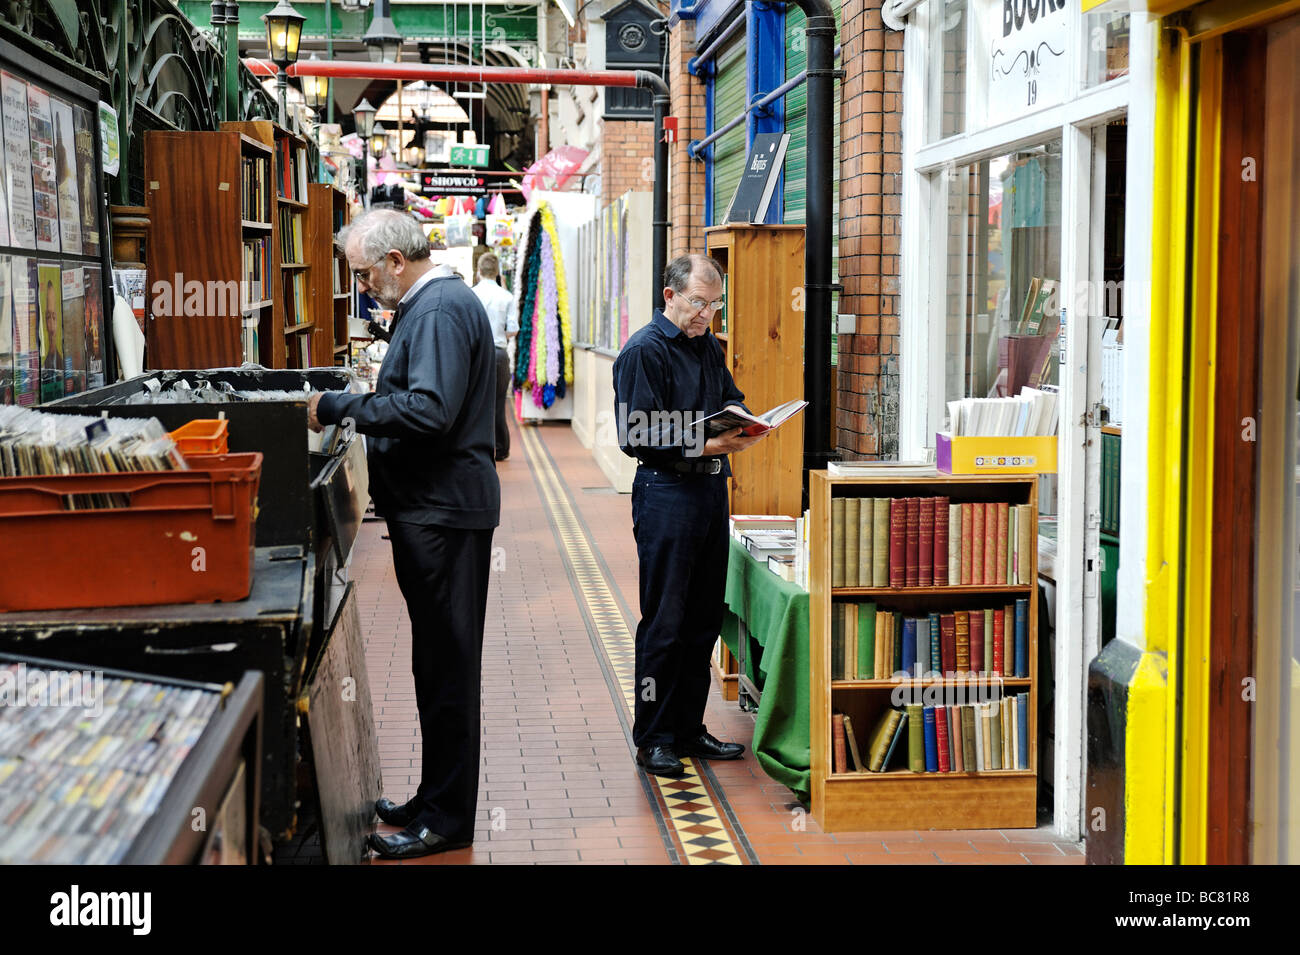 Second hand book stall in South City Market aka George s Street Arcade in Dublin Republic of Ireland - Stock Image